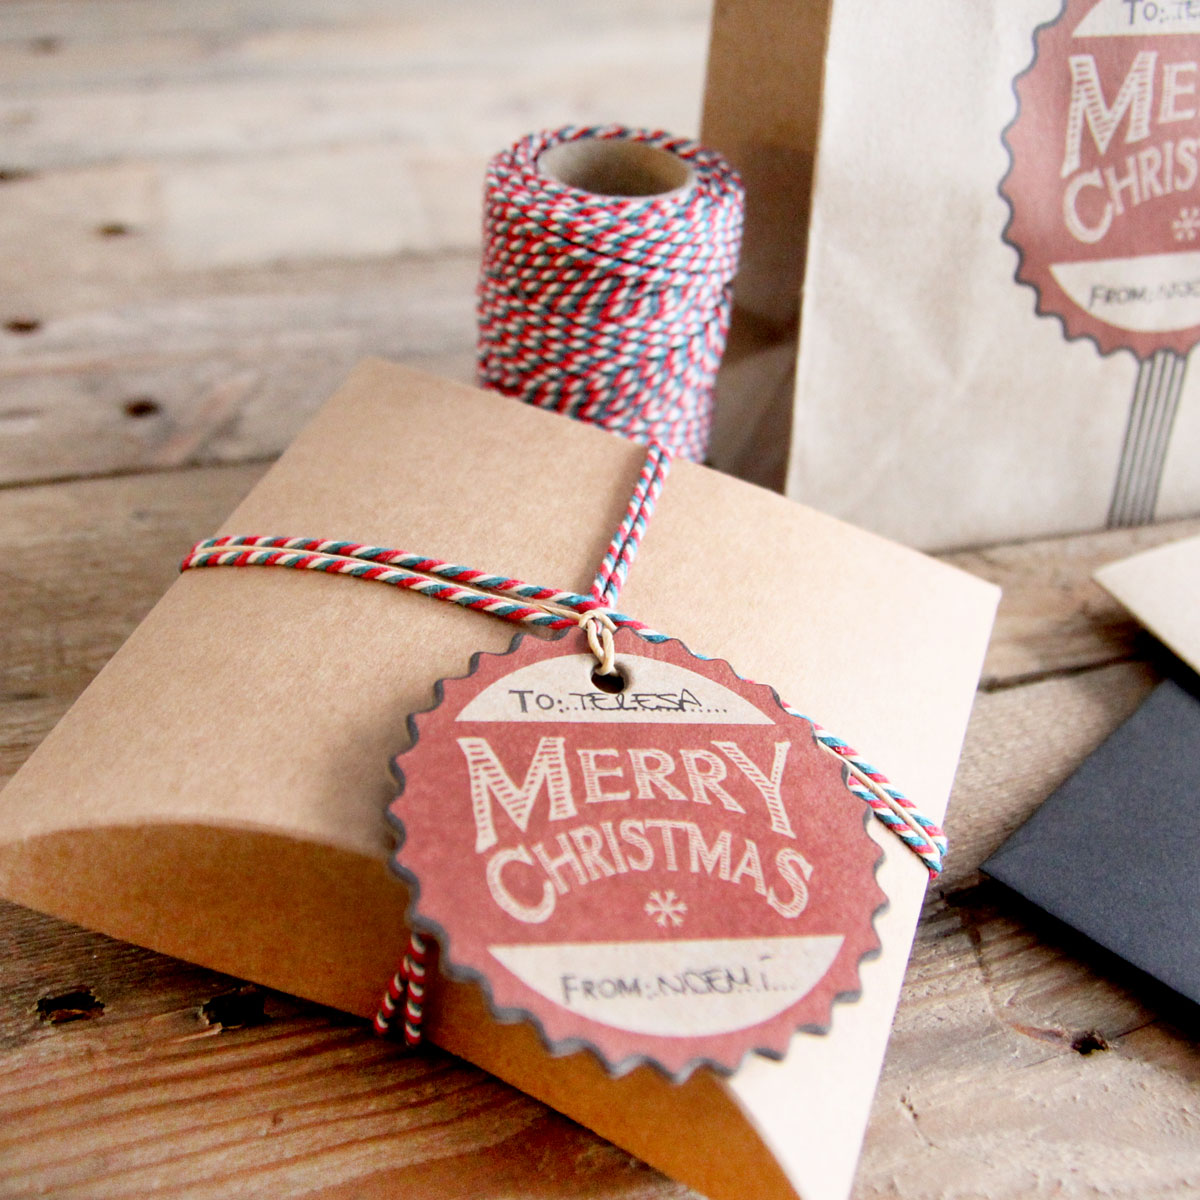 Mr_wonderful_shop_decoracion_navidad_2014_030